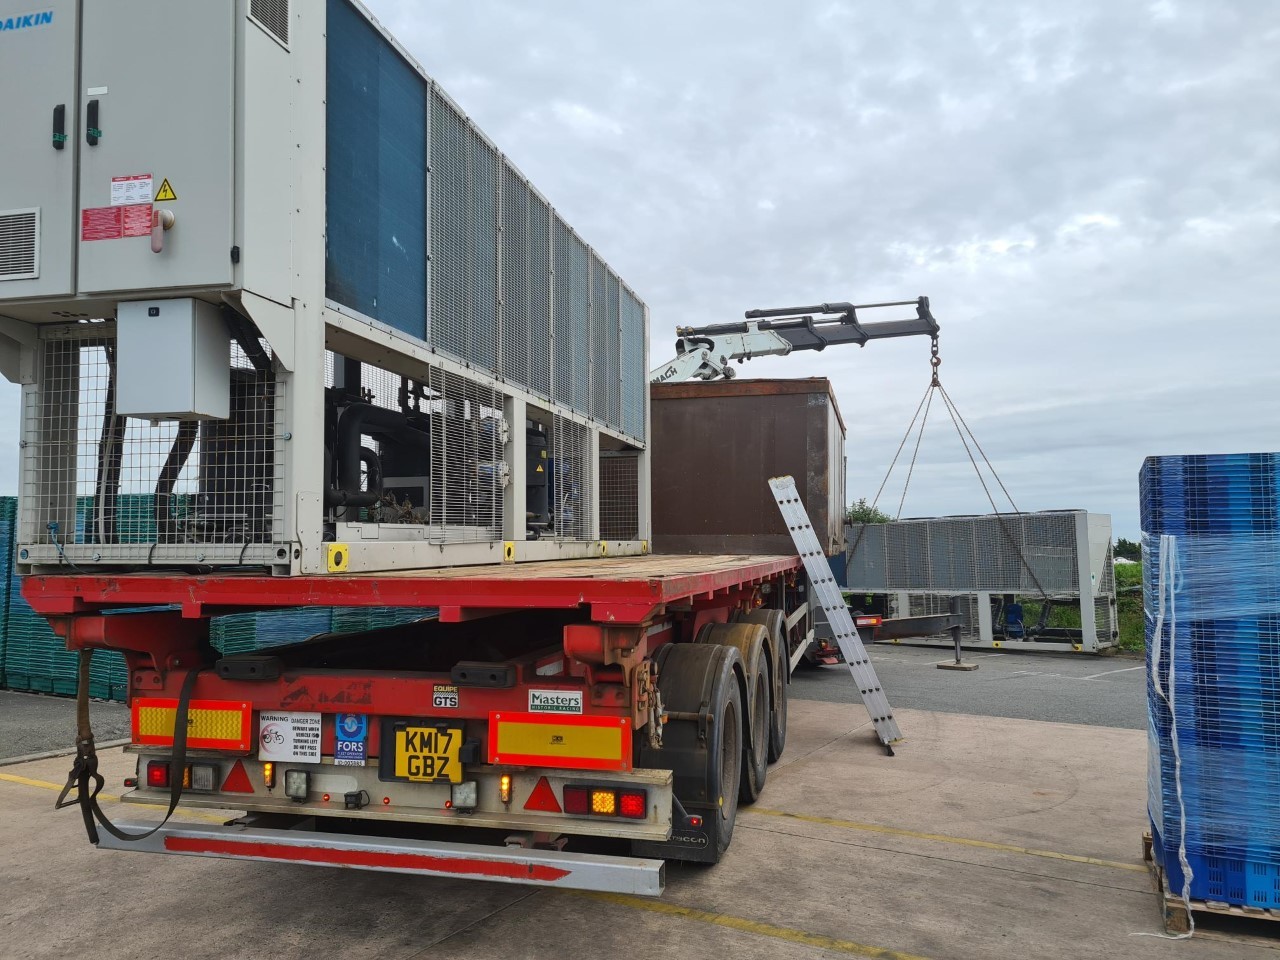 Air con units being loaded - Evesham